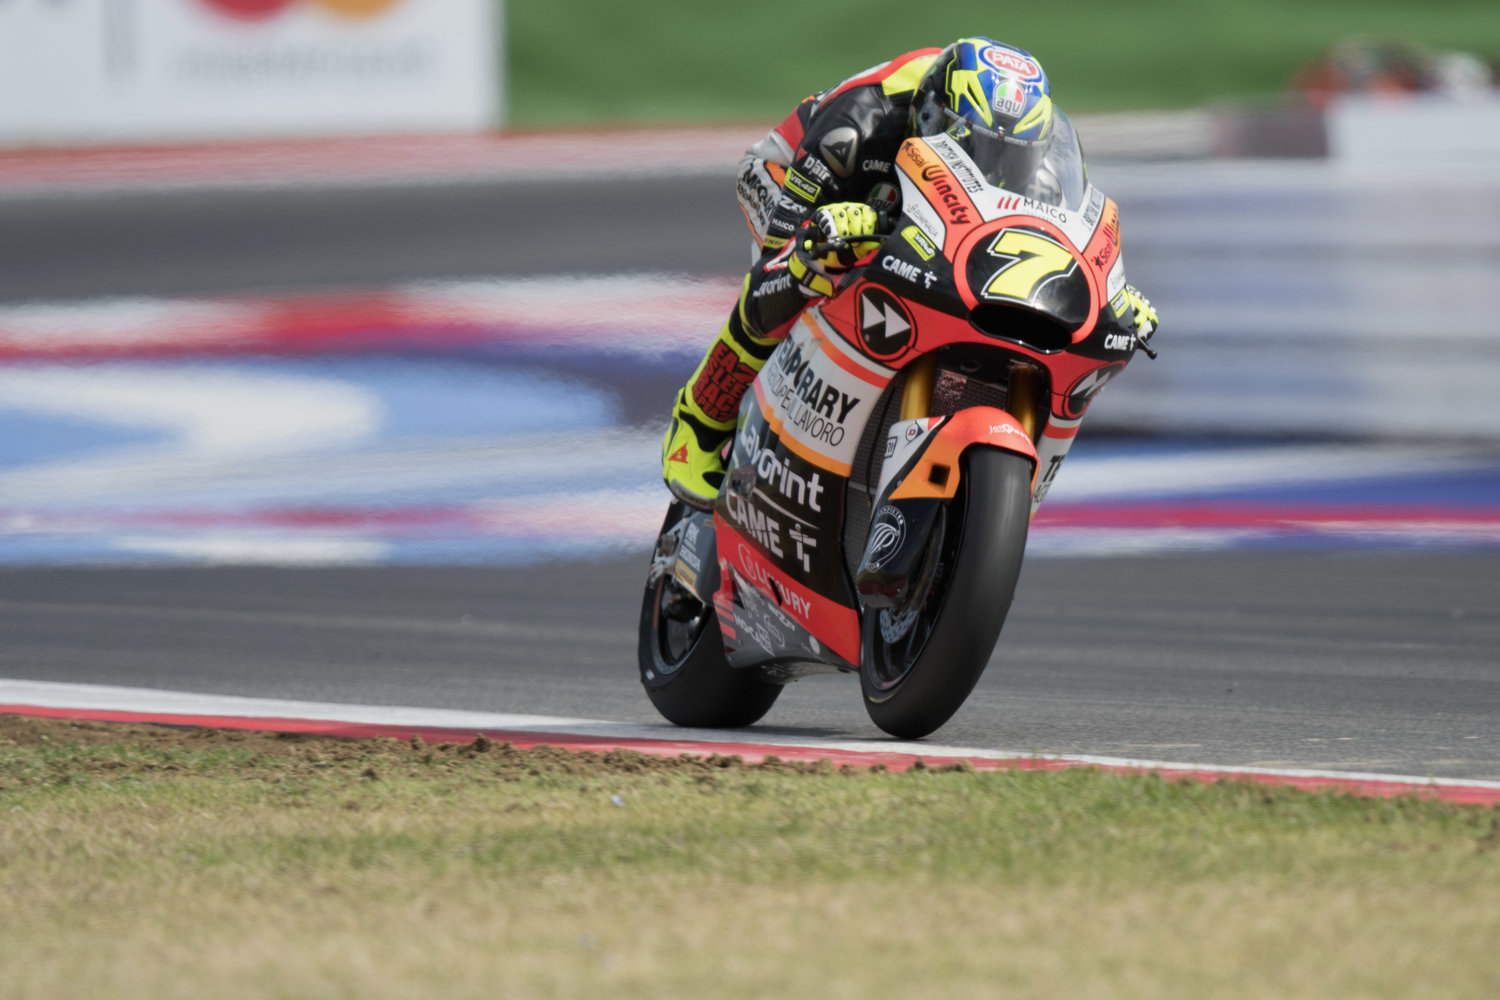 Baldassarri attacks at home from fabulous fourth, Marini shows strong qualifying